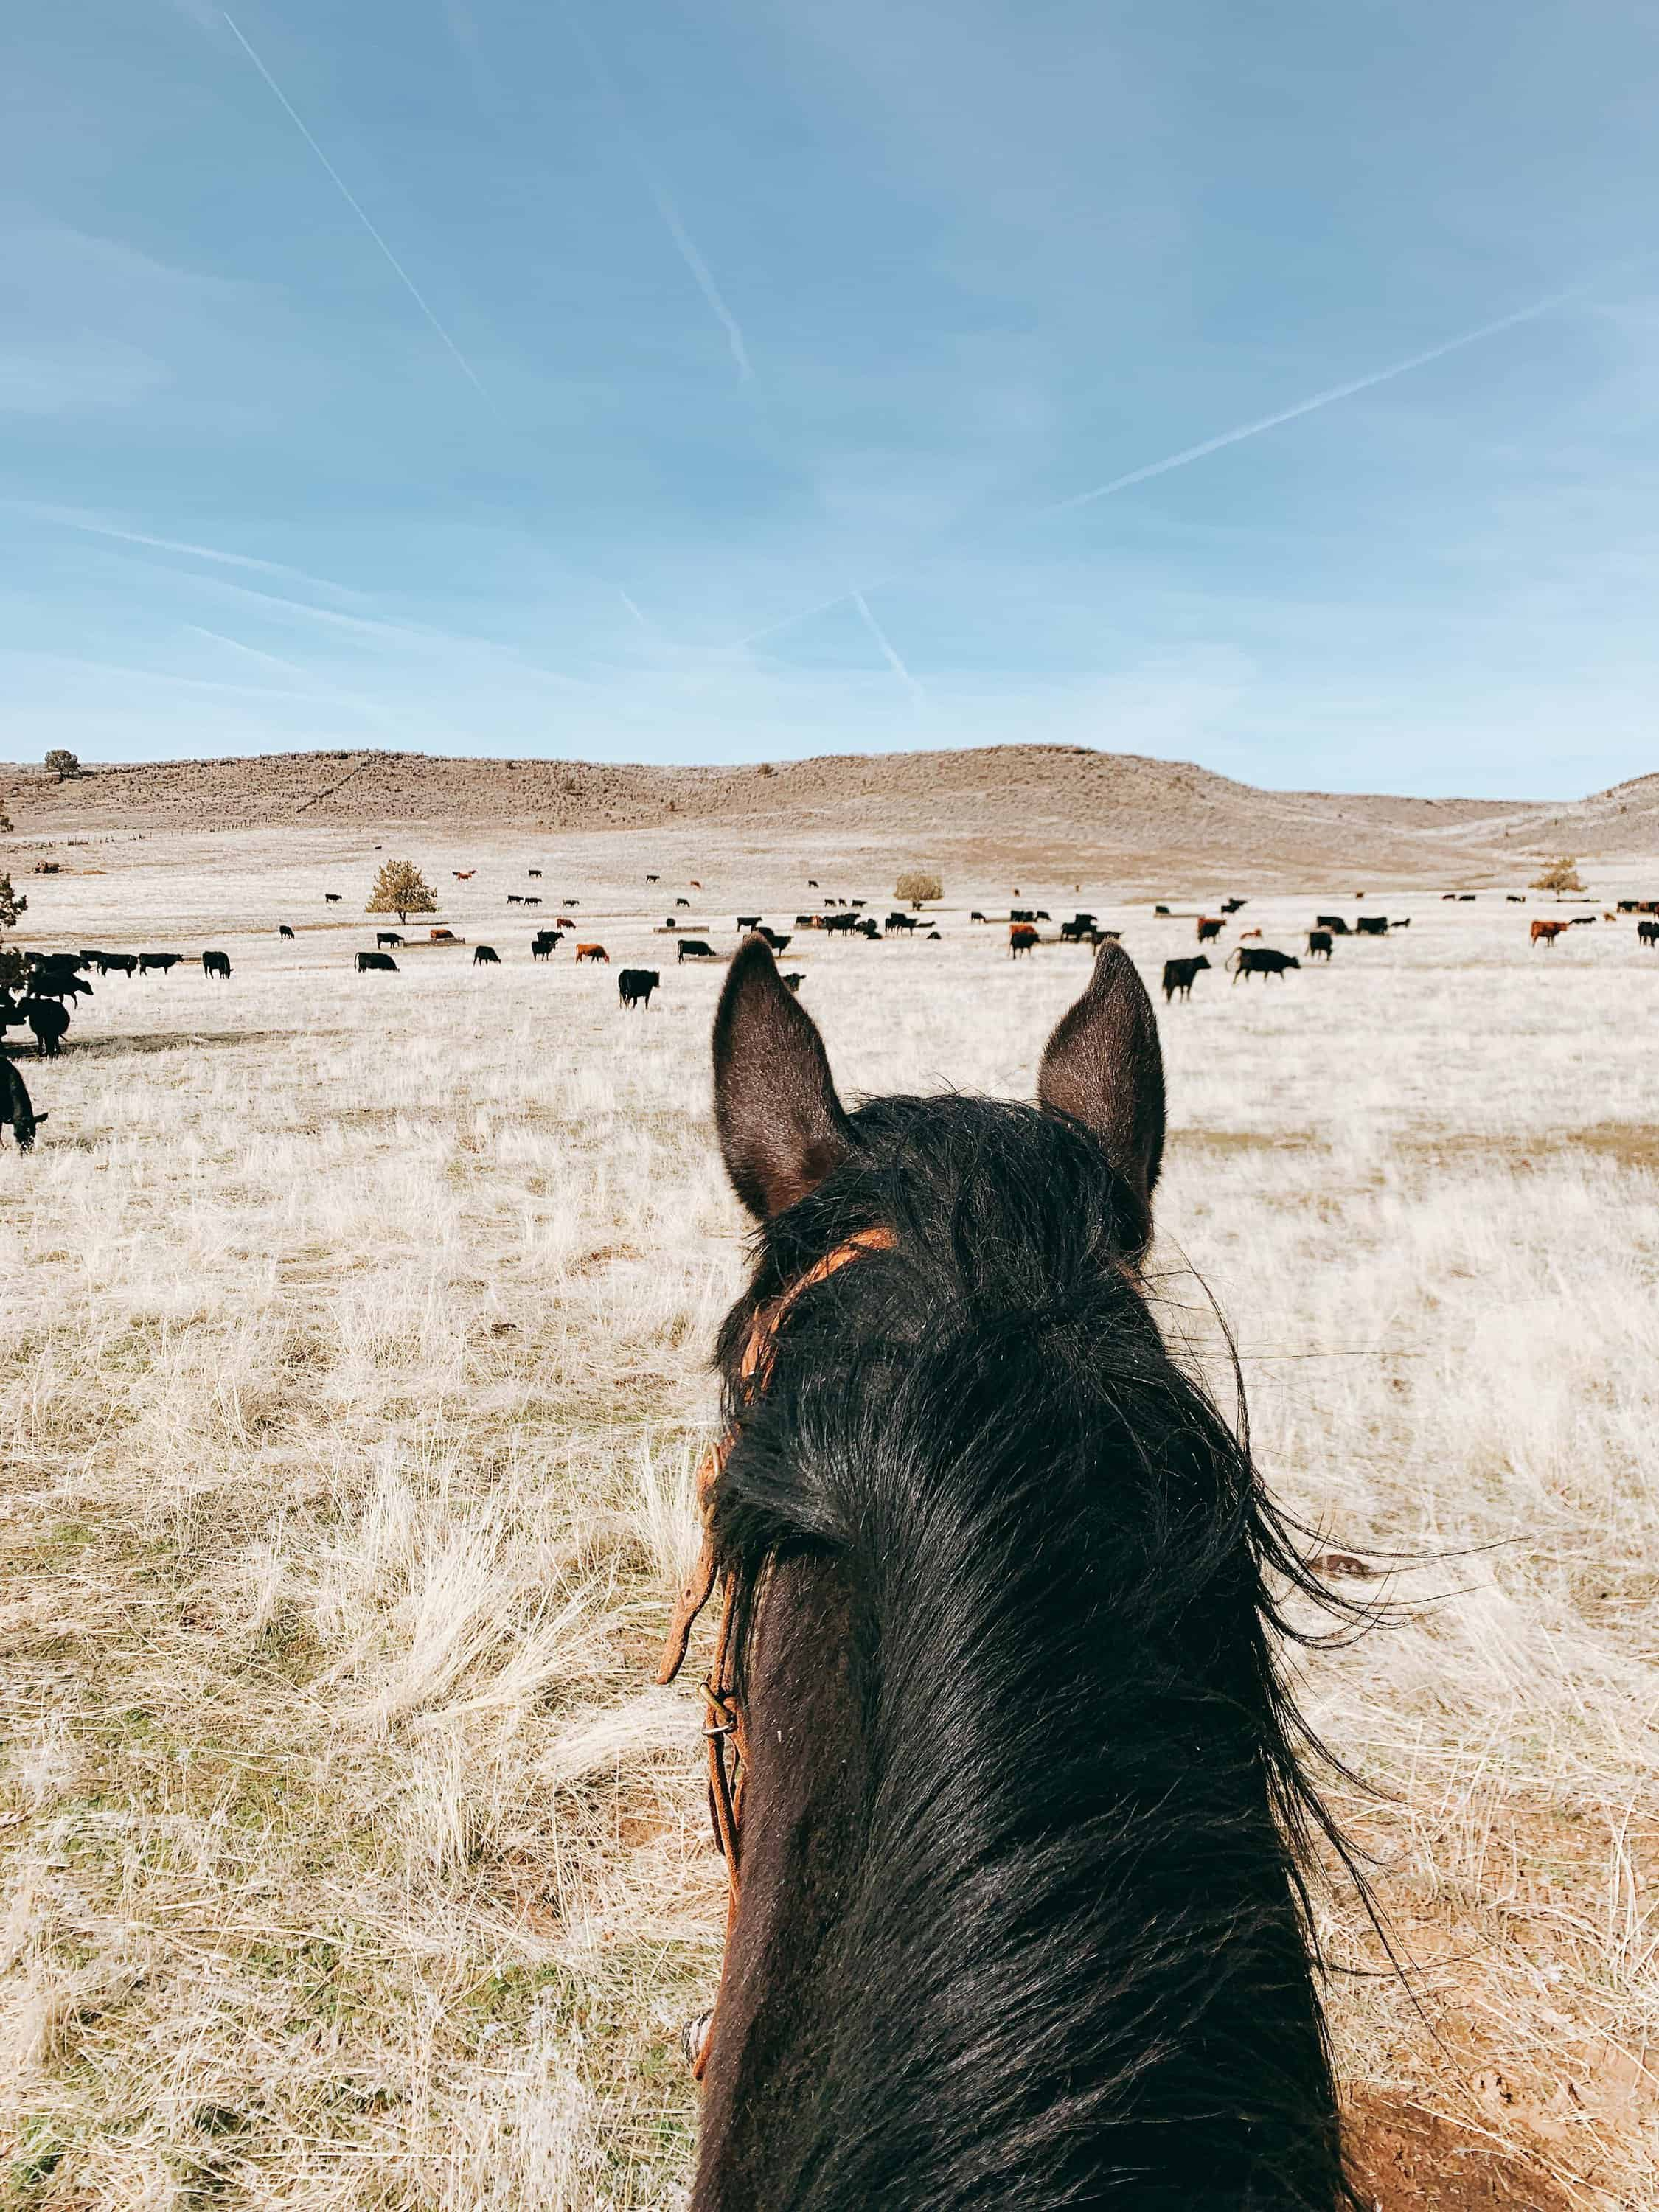 Come along with us for a Day on the Ranch! We'll feed hay, move cows, and experience a few bumps in the road!